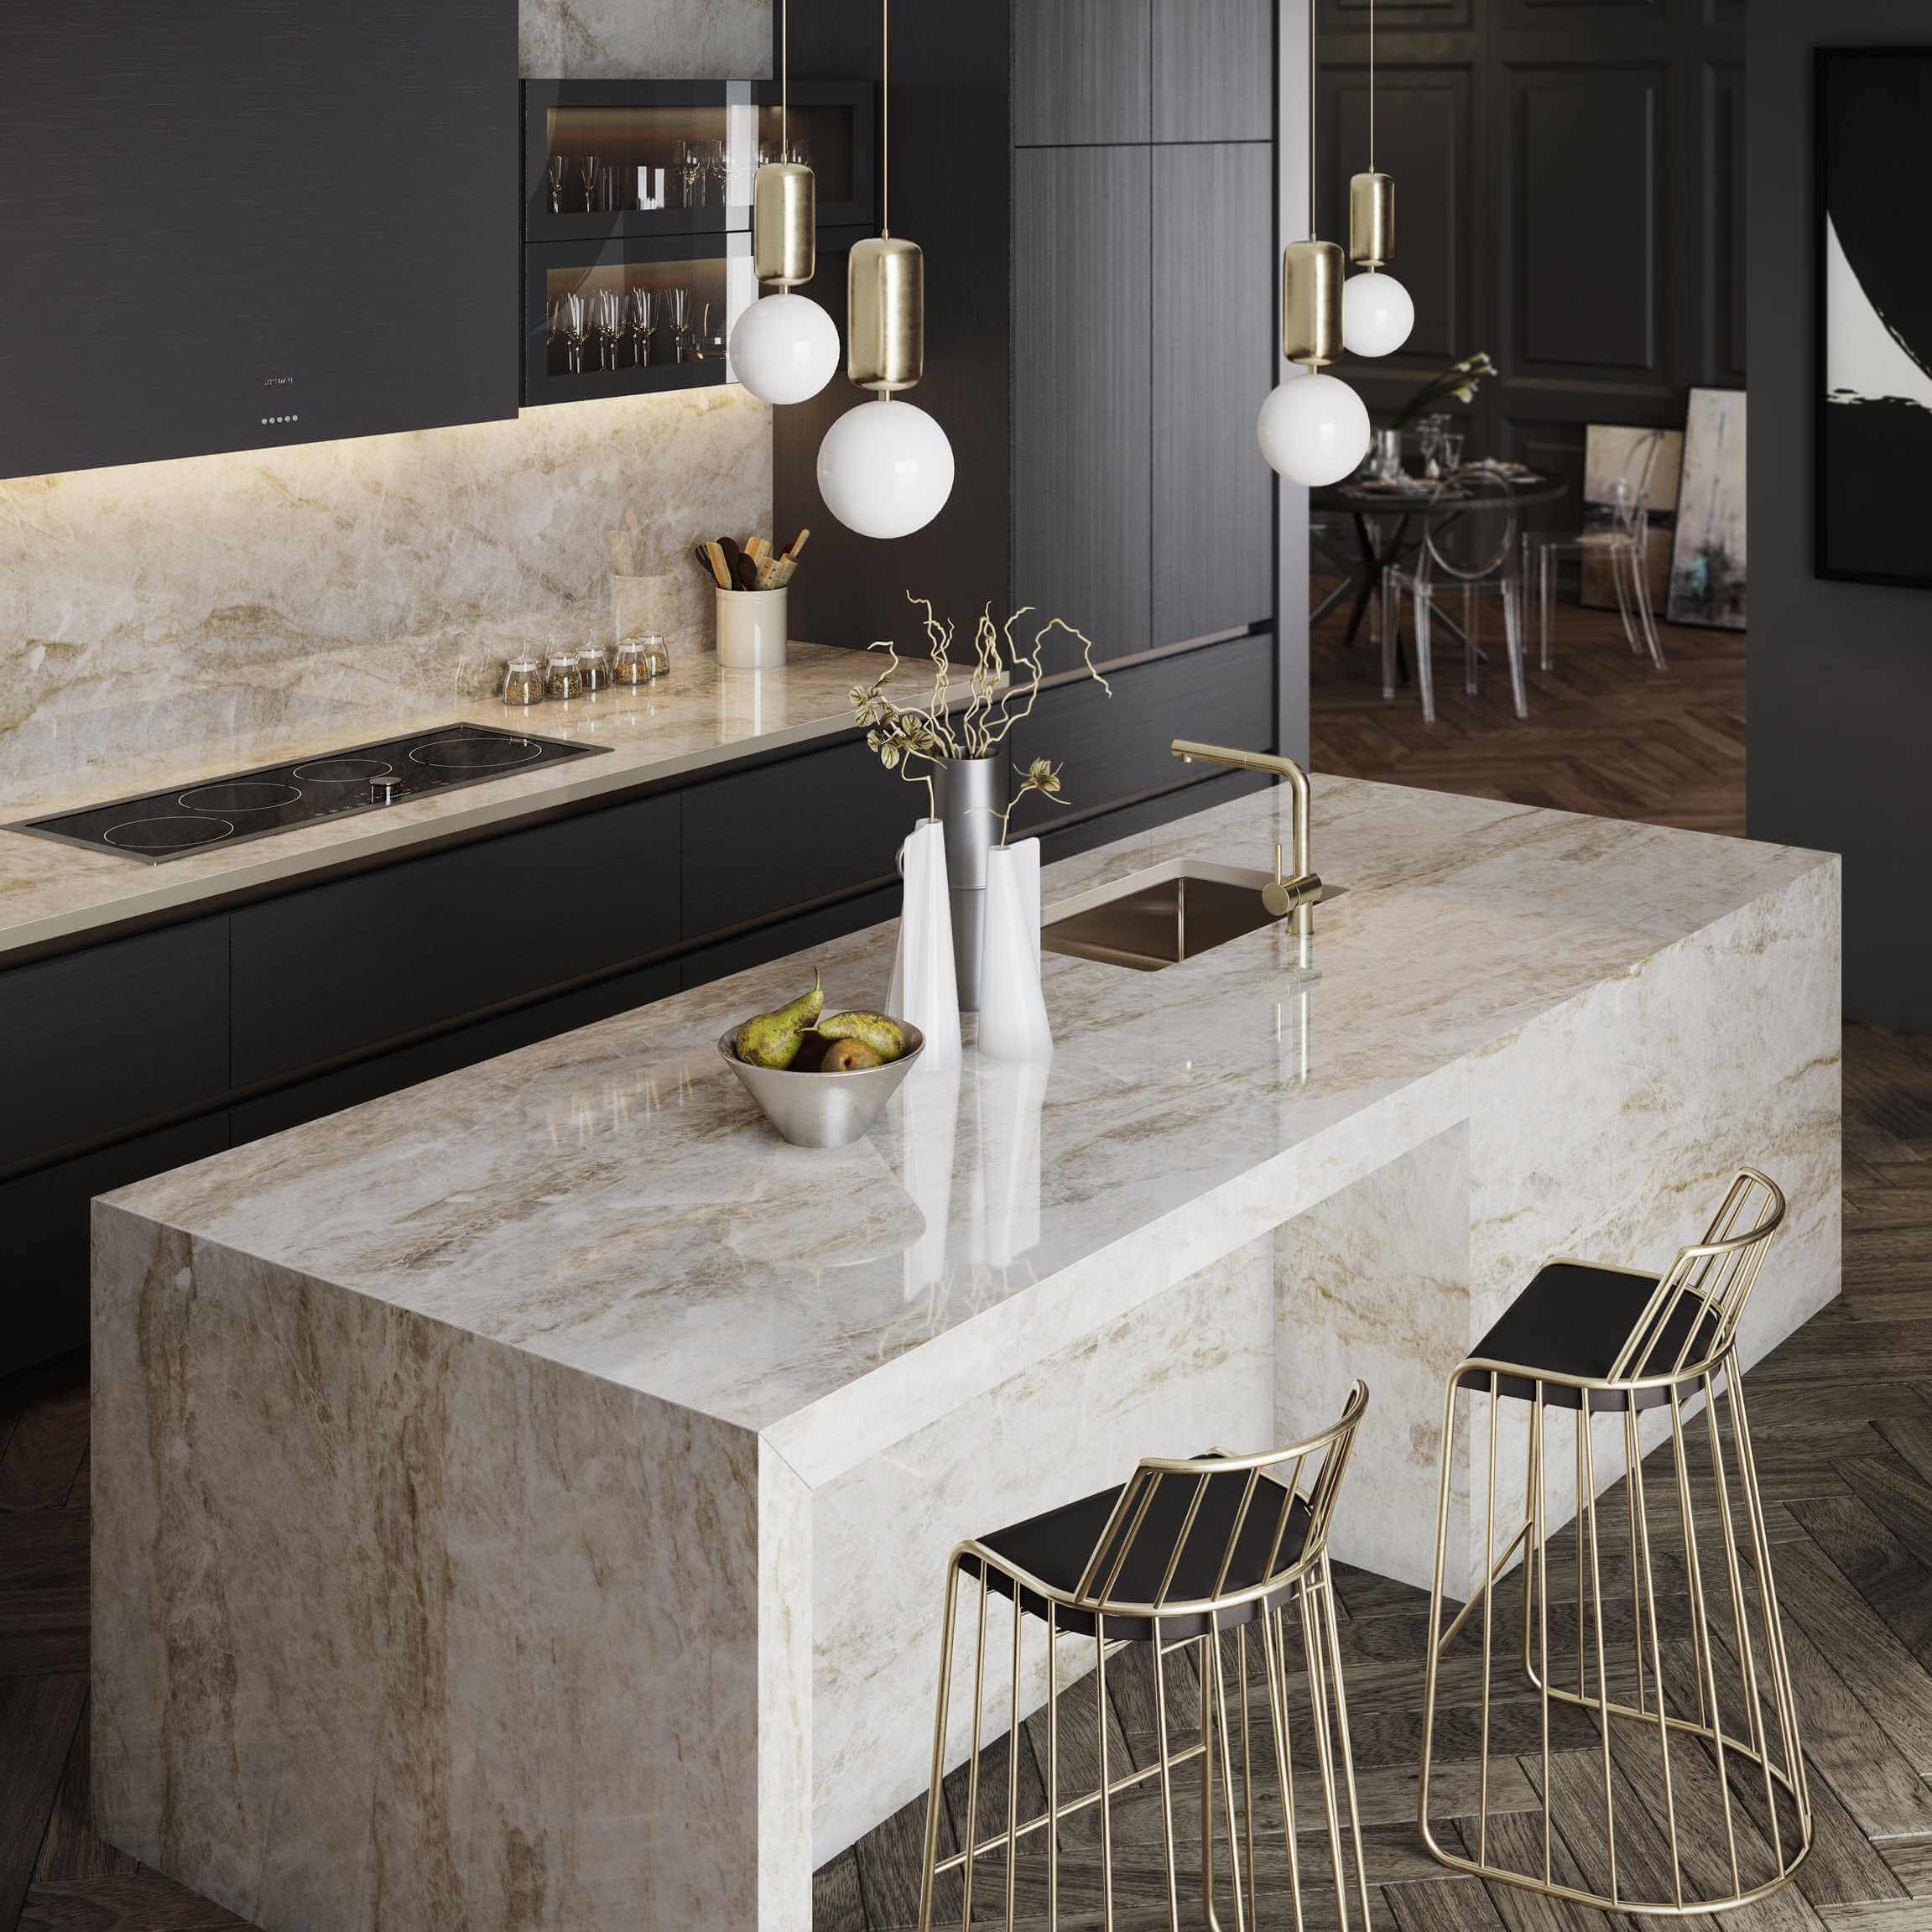 Marble effect kitchen surfaces